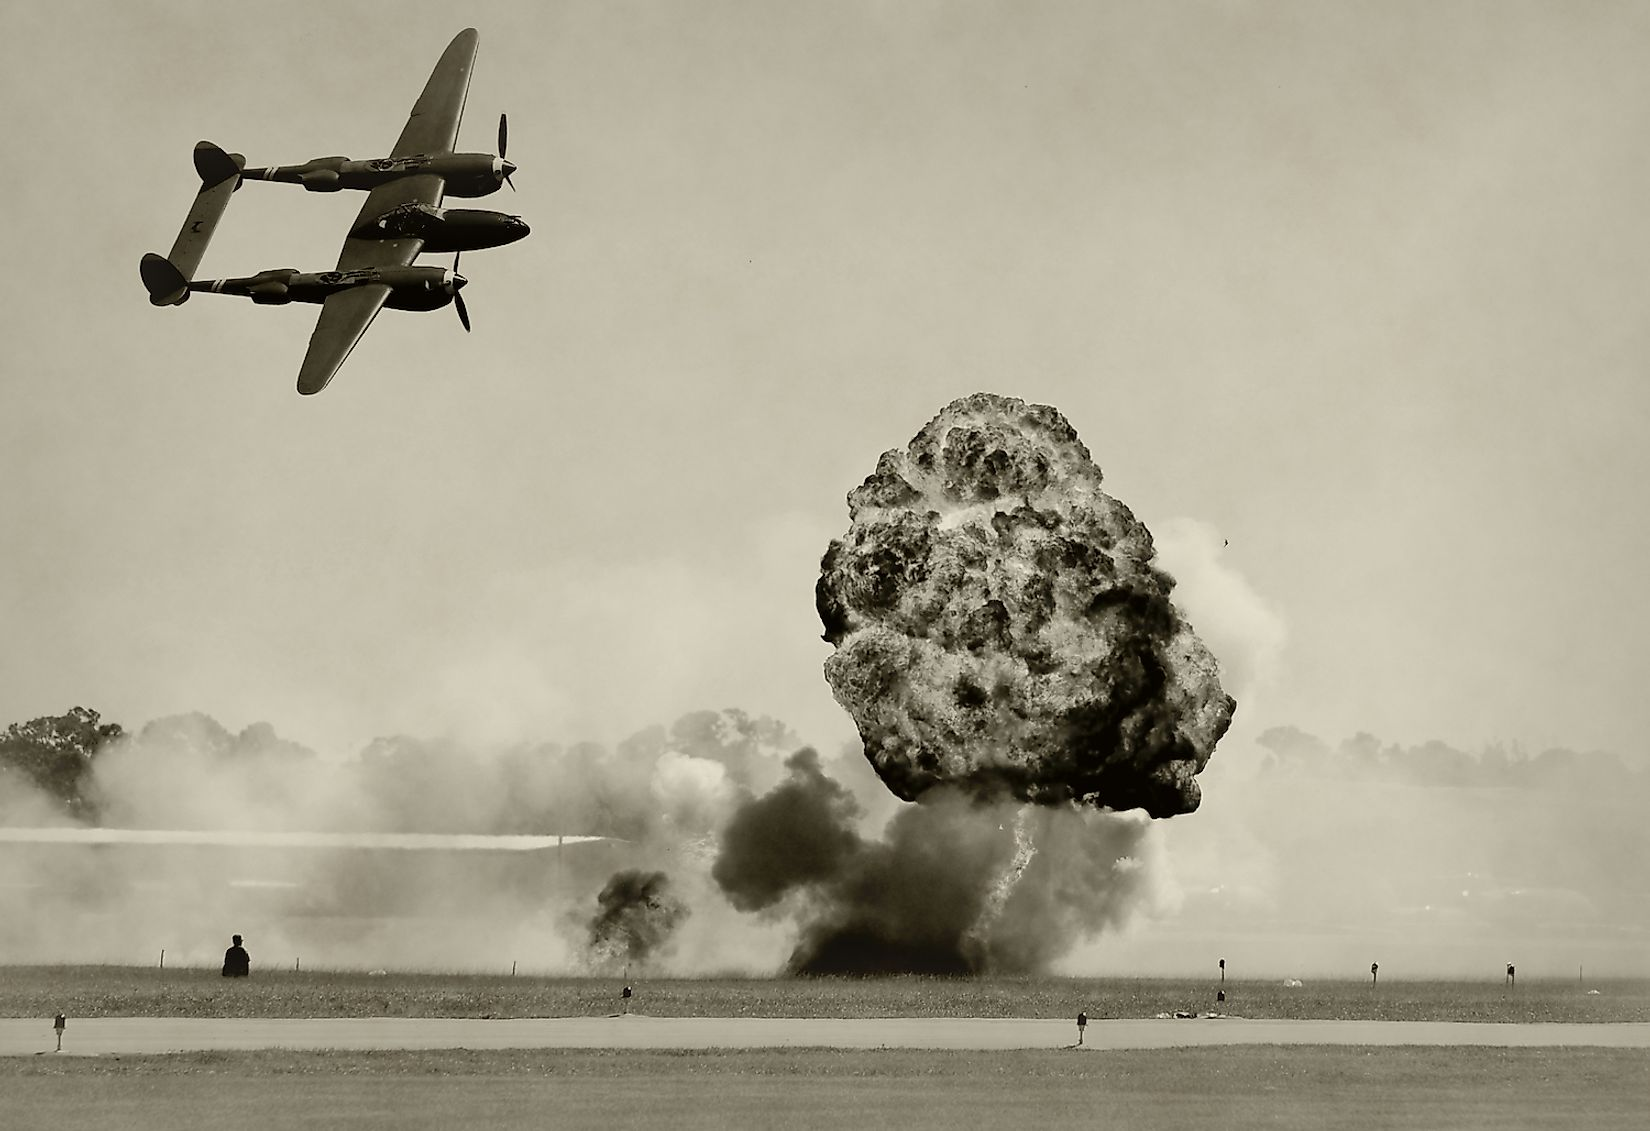 World War II era battle and bombing. Image credit: Ivan Cholakov/Shutterstock.com